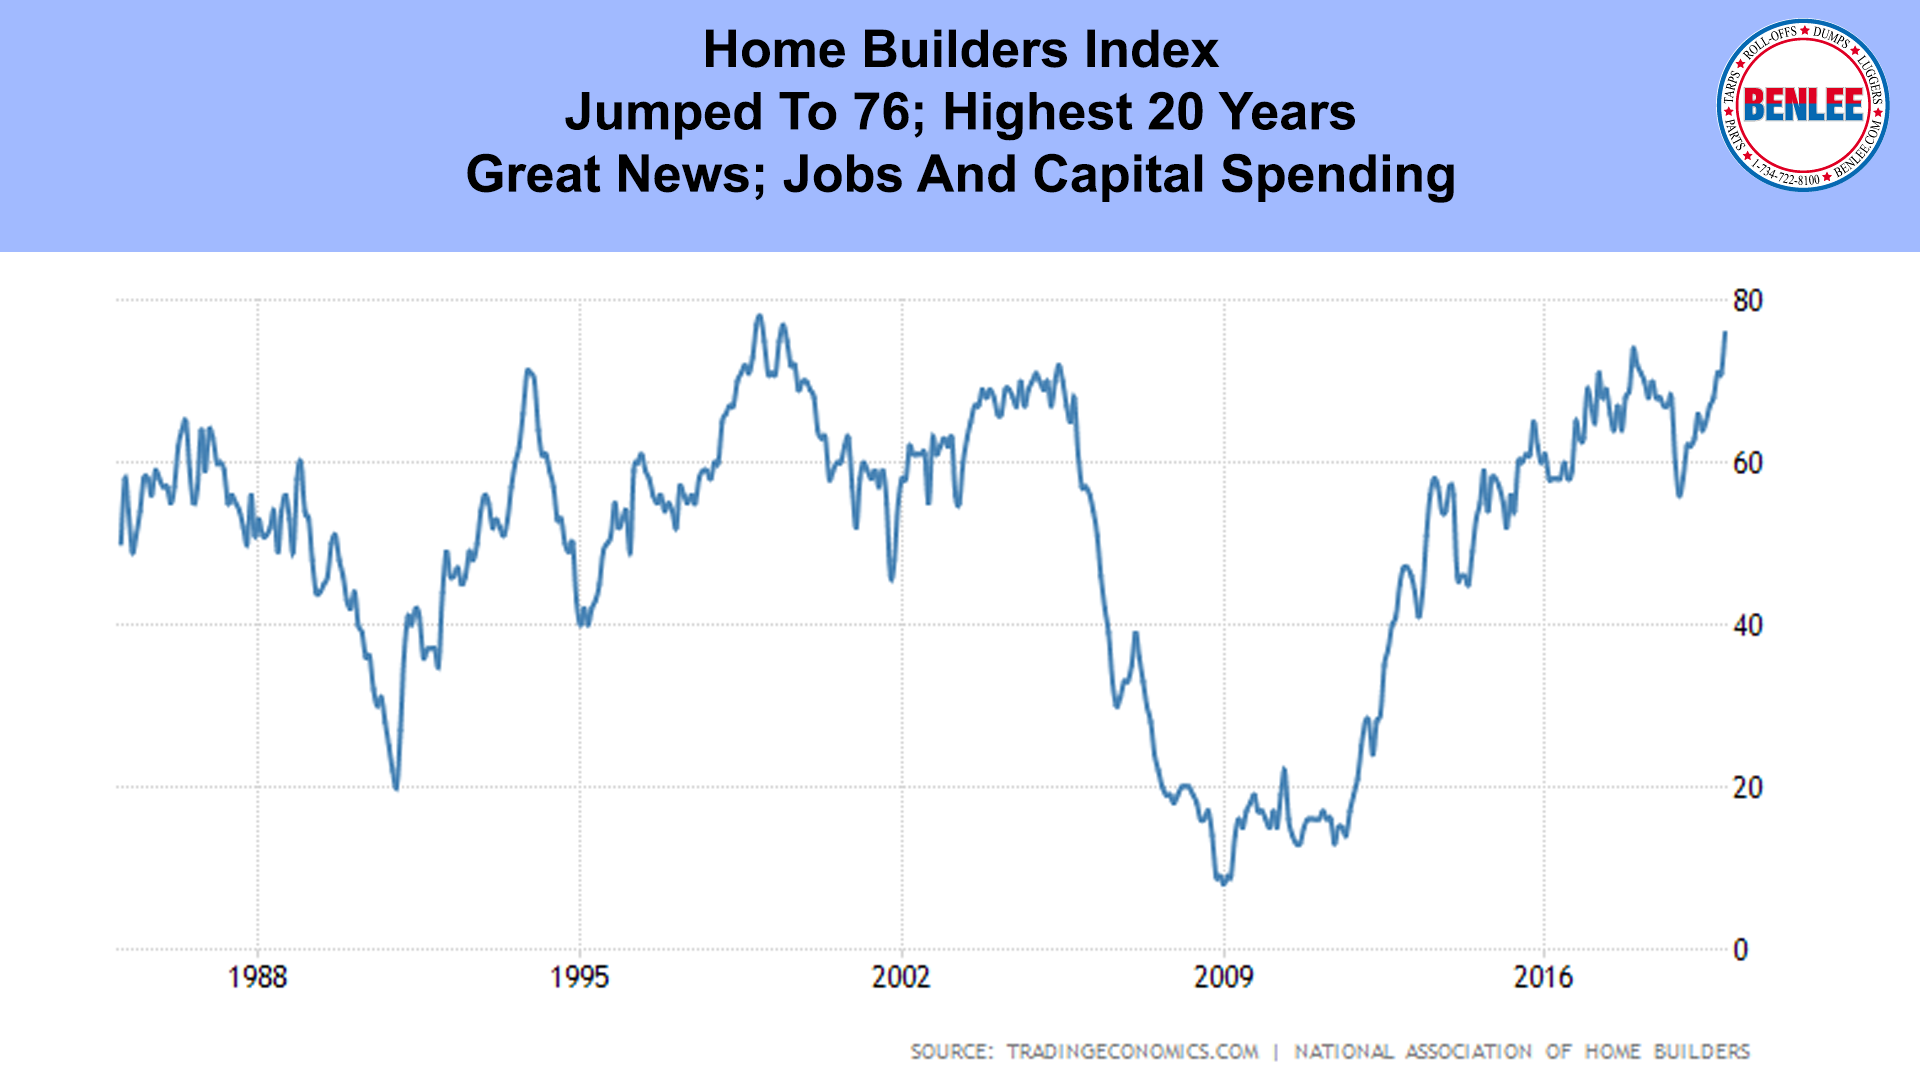 Home Builders Index